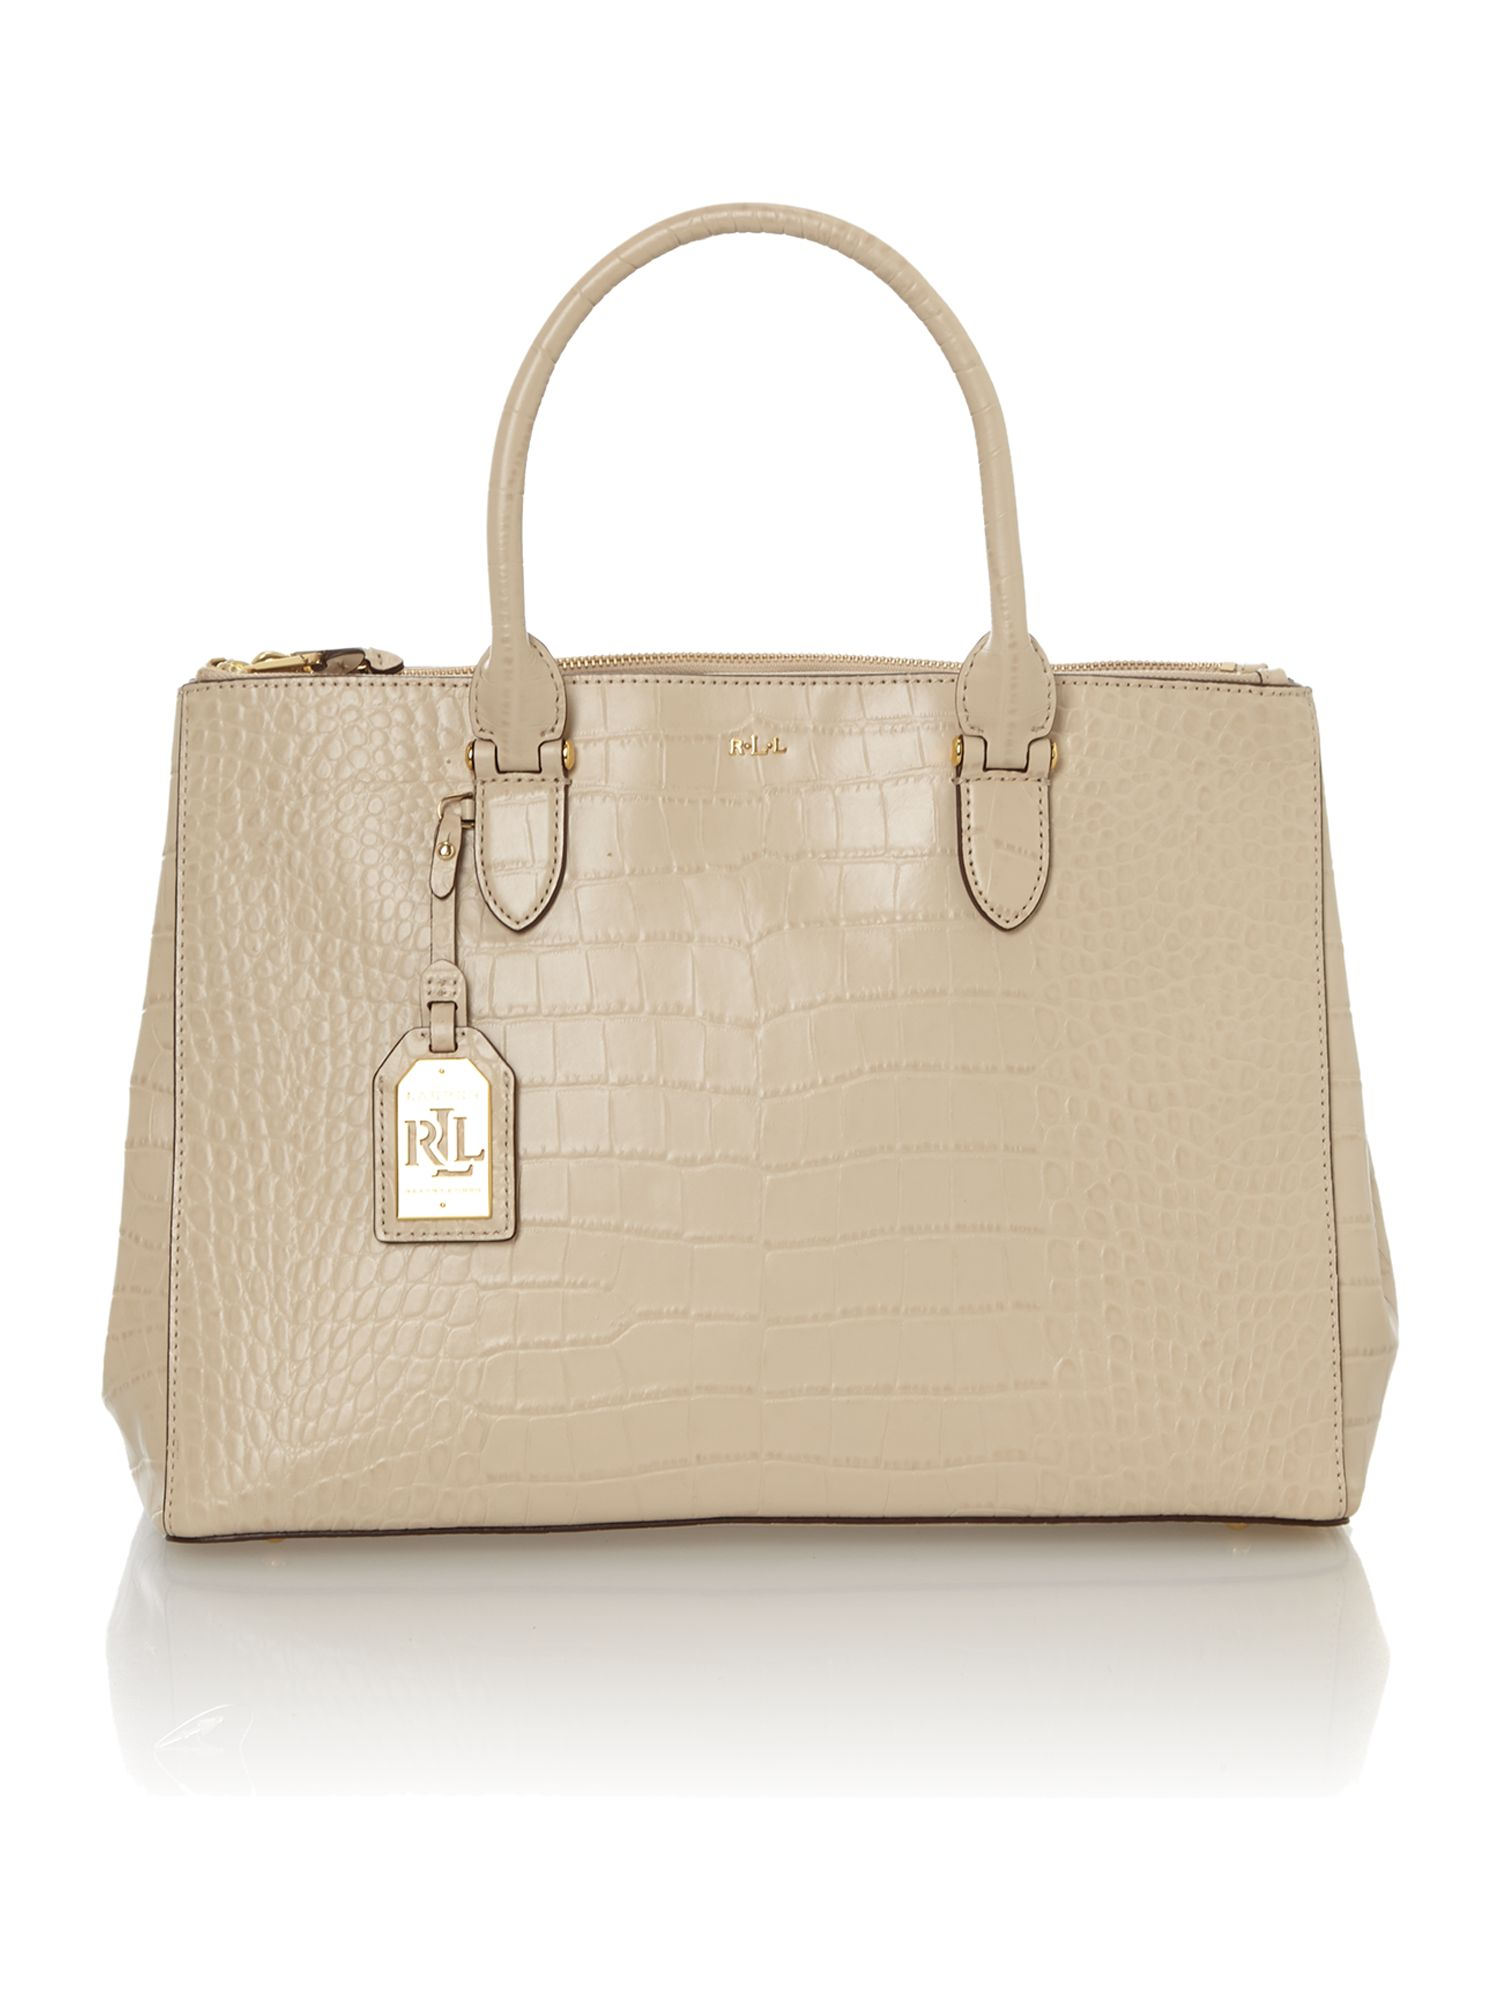 Lanesborough neutral croc double zip tote bag